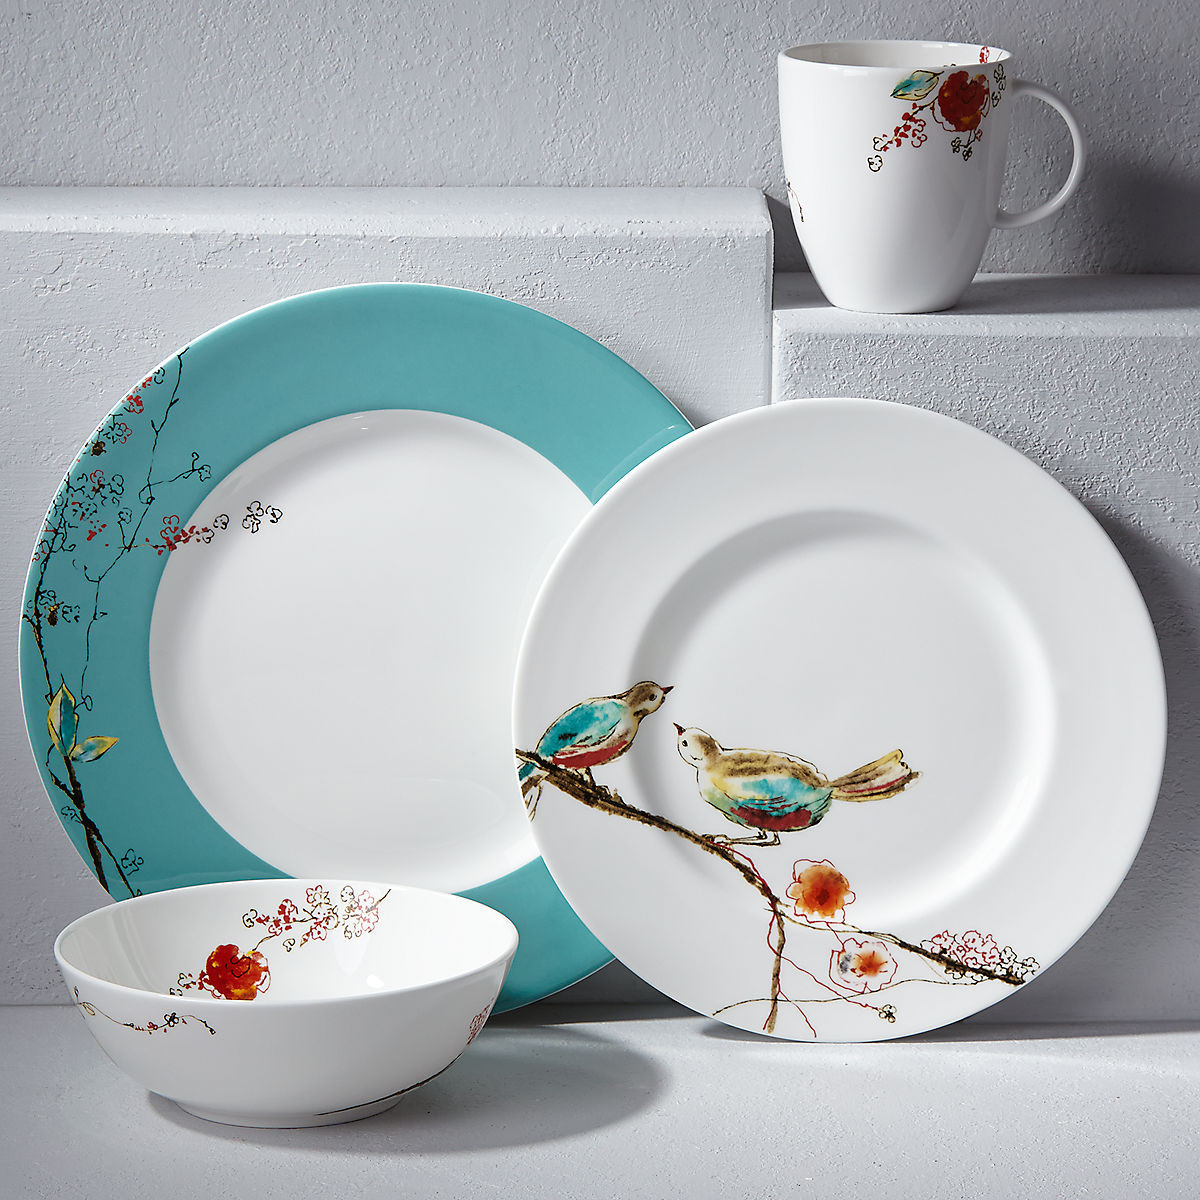 lenox china vases discontinued of chirp 4 pc place setting spring dinnerware with chirp 4 pc place setting